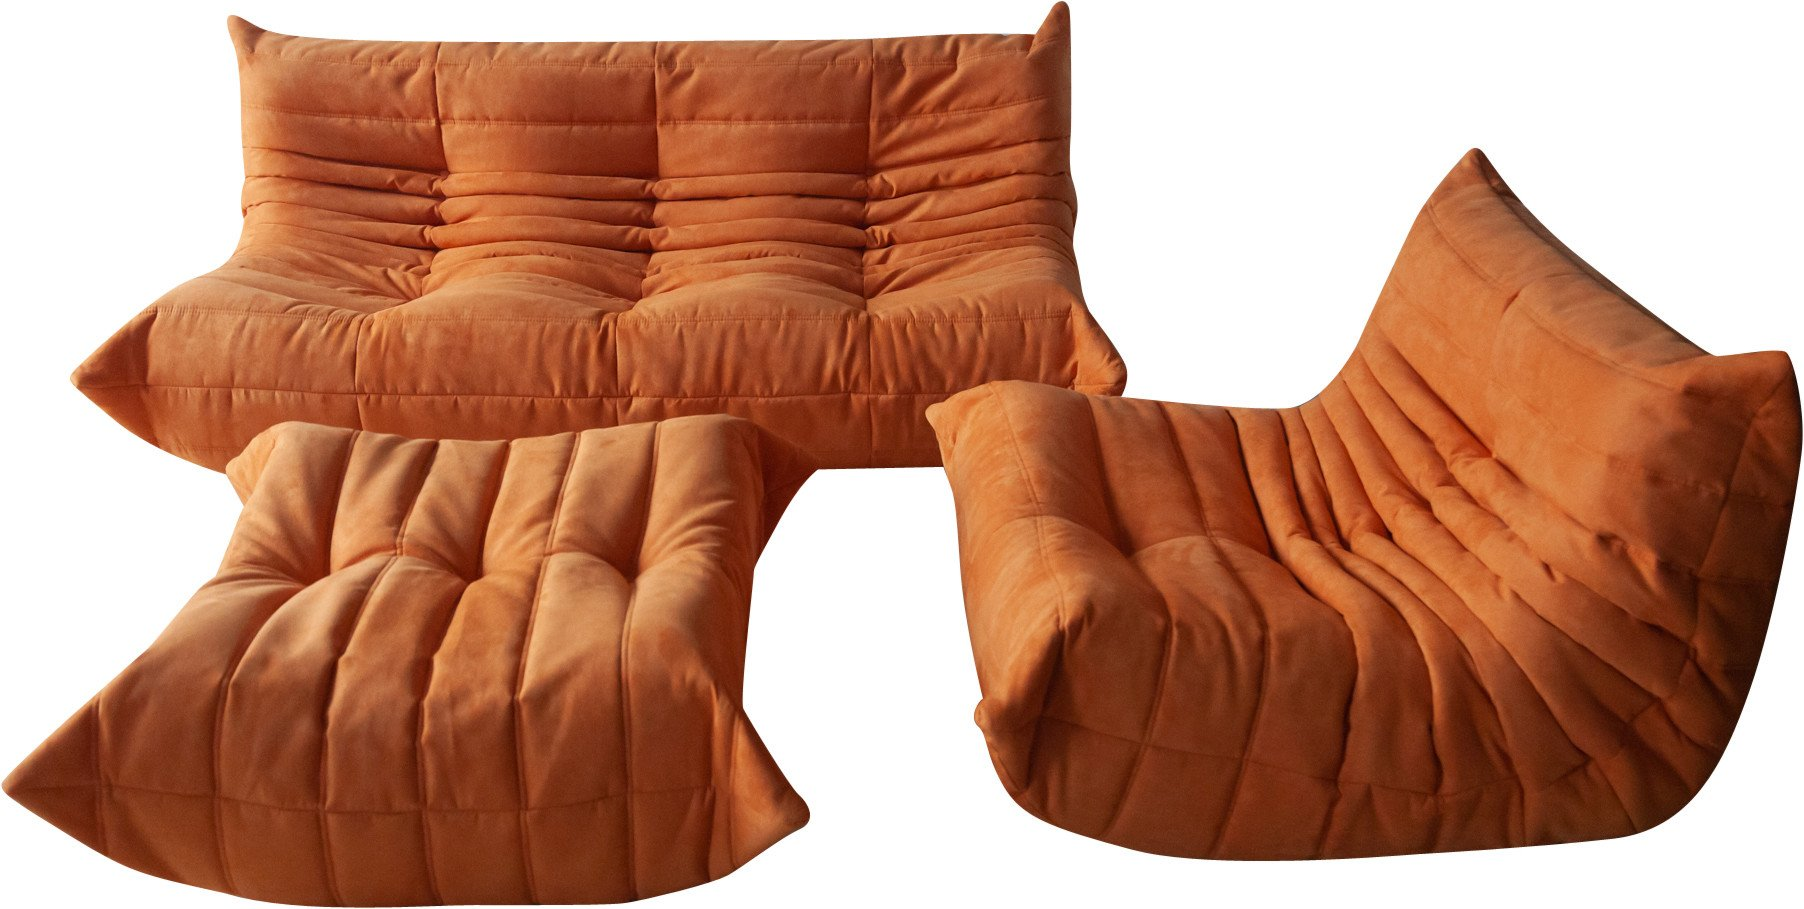 Togo Set of Armchair, Pouf and Sofa by M. Ducaroy for Ligne Roset, France, 1970s